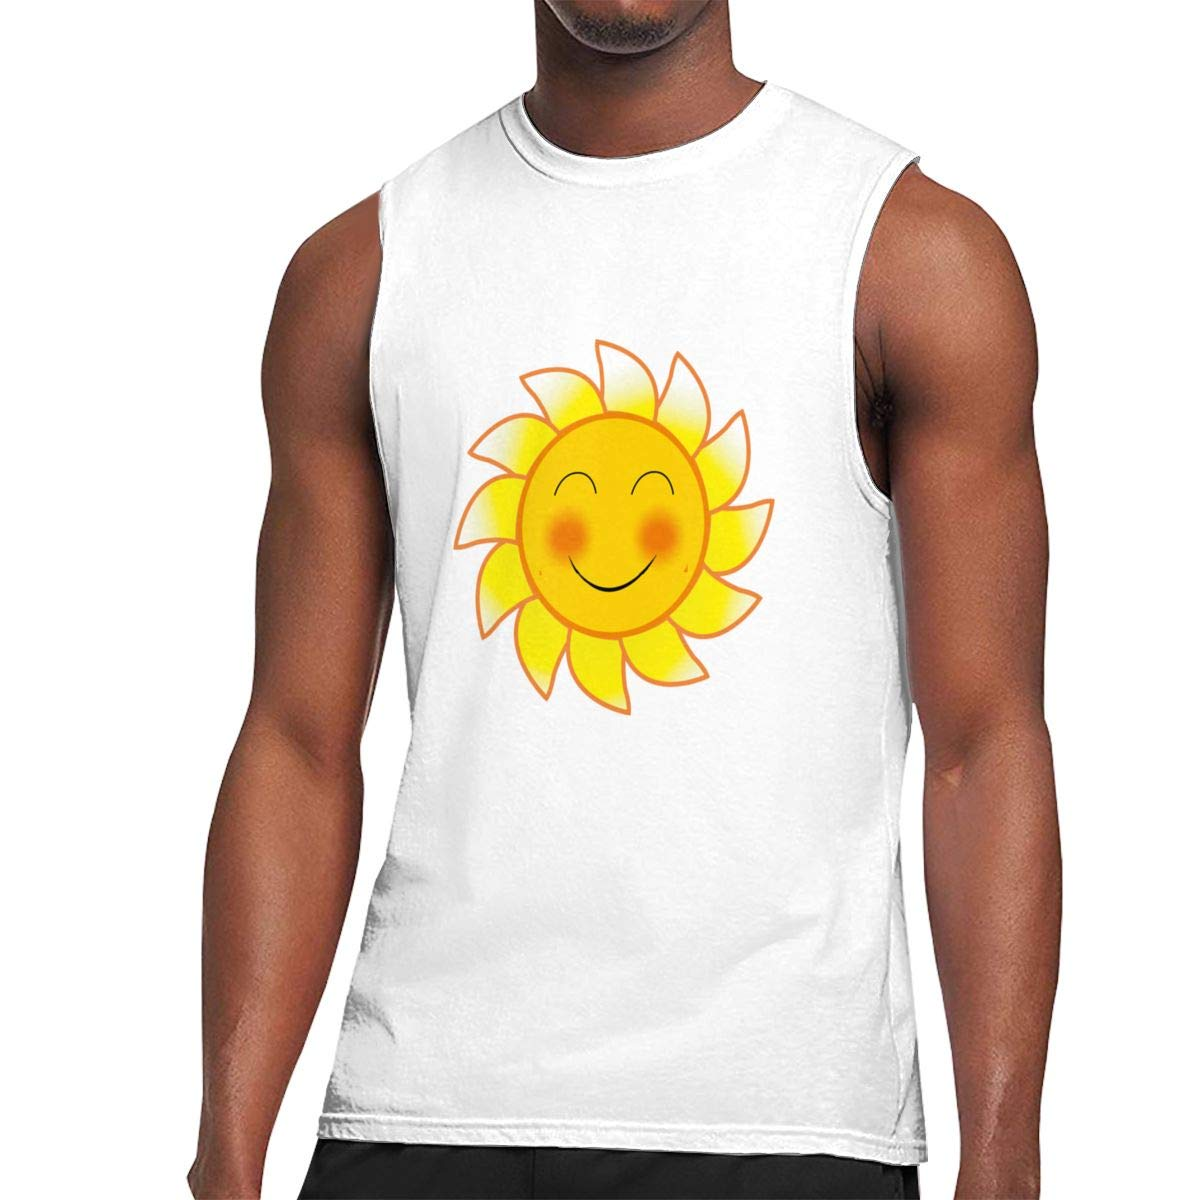 Seuriamin Smile Blushing Sun Expression S Funny Tennis Sleeveless Muscle Short Sleeve T Sh